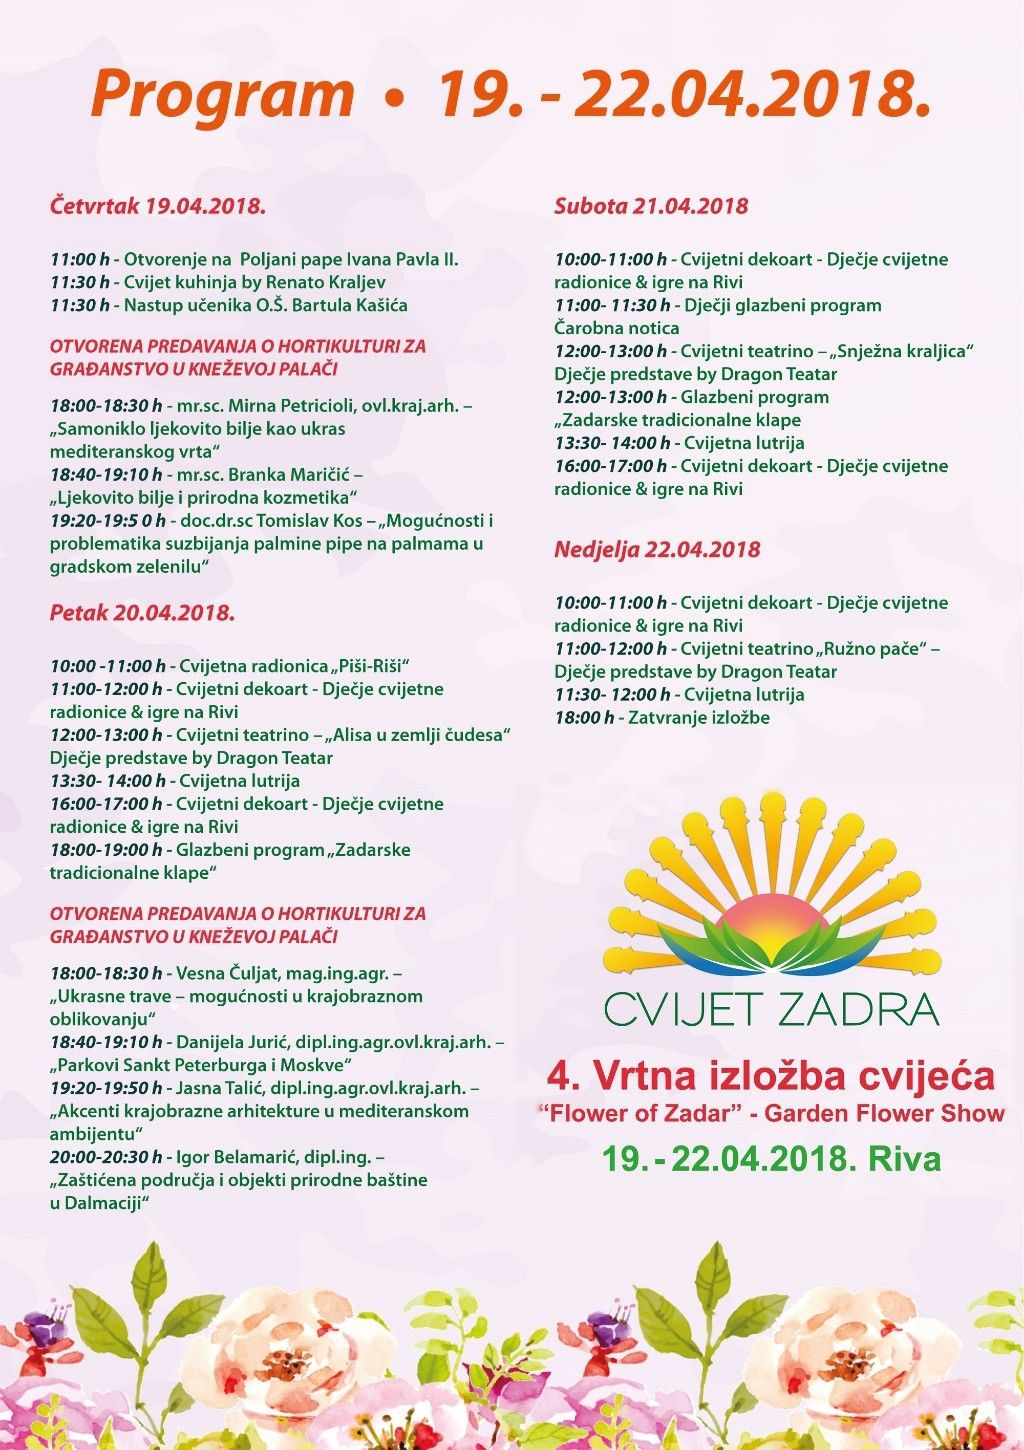 Program Cvijet Zadra-1024x1450